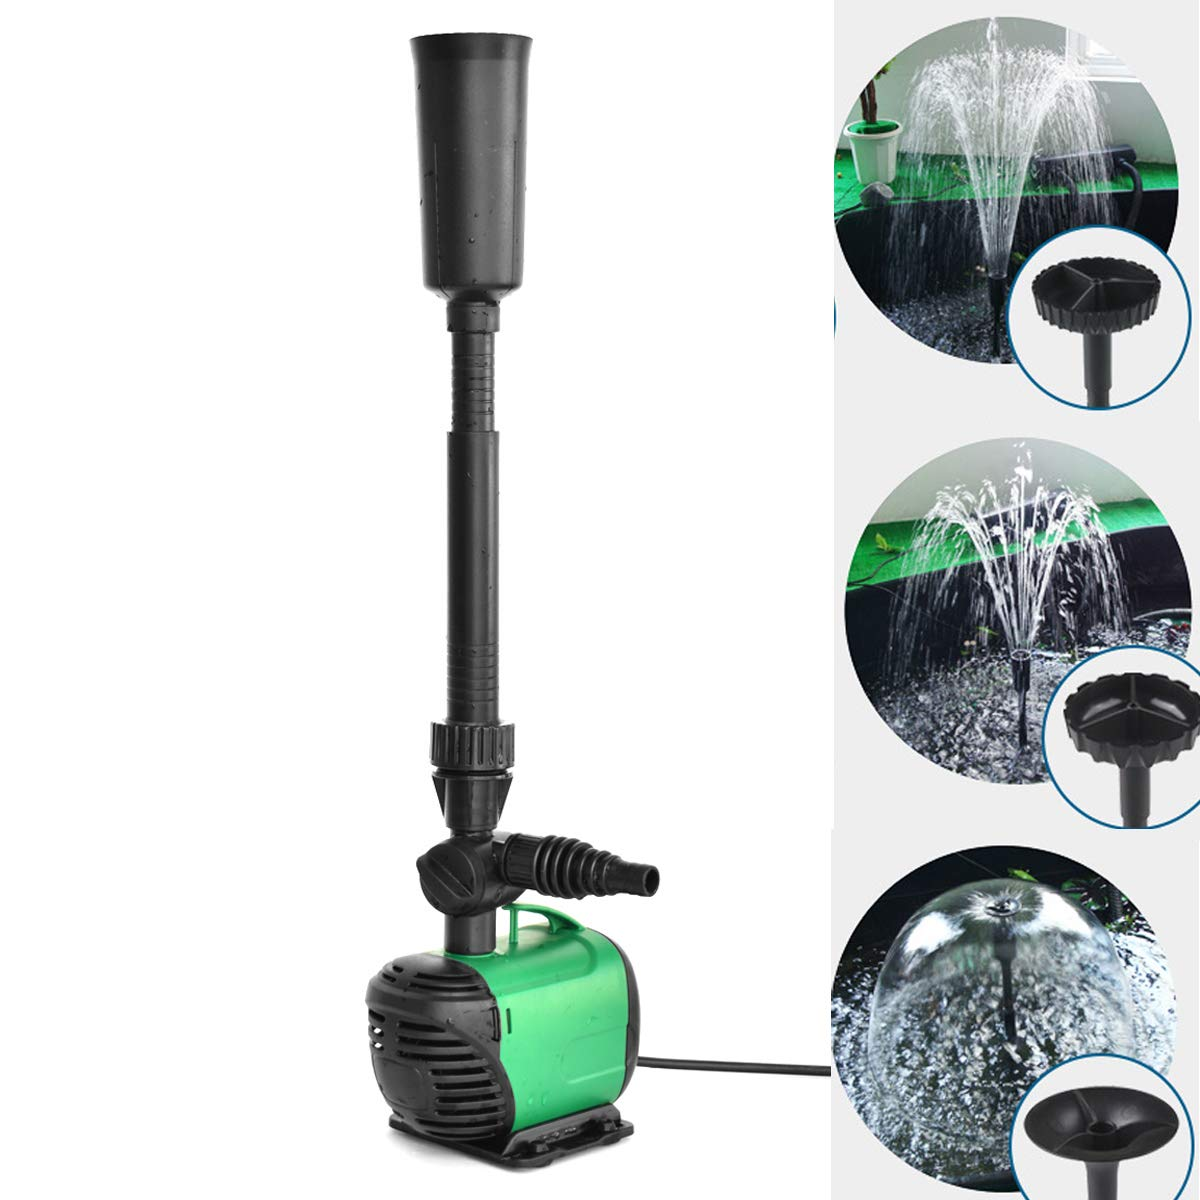 COODIA 370GPH (1400L/H, 110V/24W) Submersible Pump Pond Fountain Multiple Water Fountain Spray Nozzles Kit for Garden PondIndoor and Outdoor Landscape by COODIA